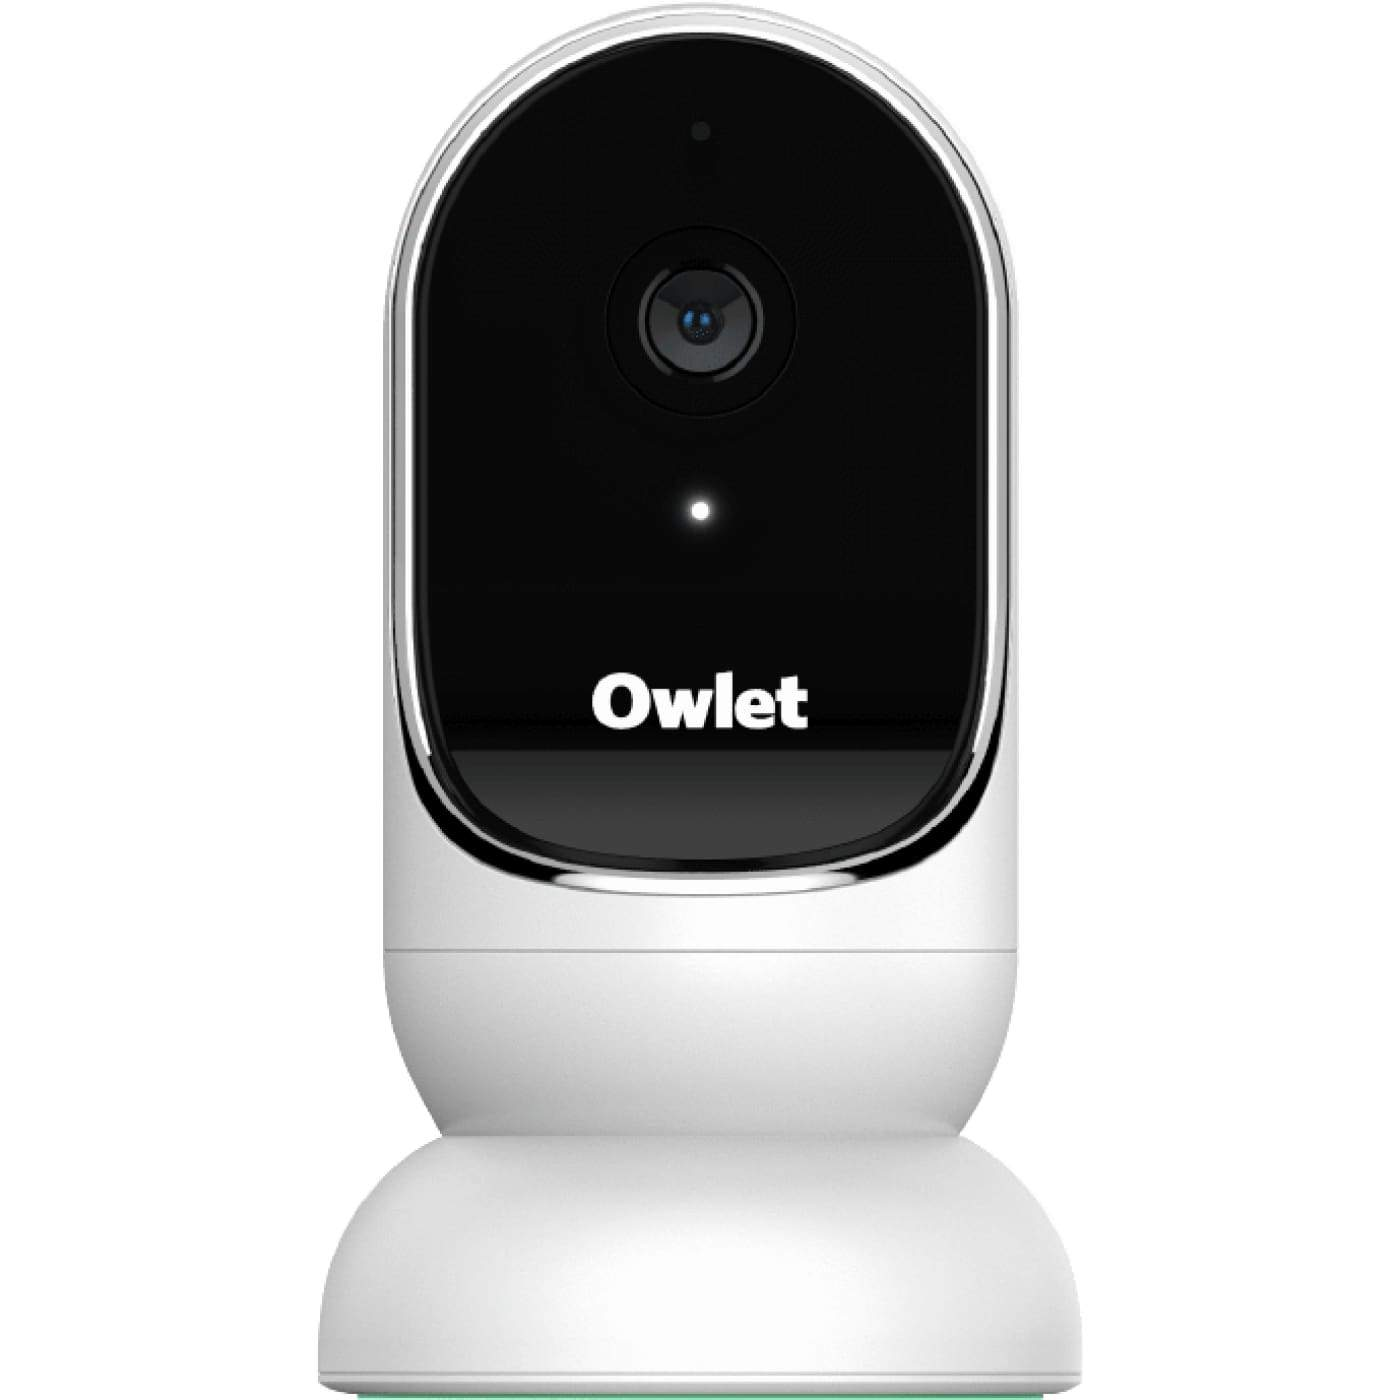 Owlet Cam - HEALTH & HOME SAFETY - BABY MONITORS